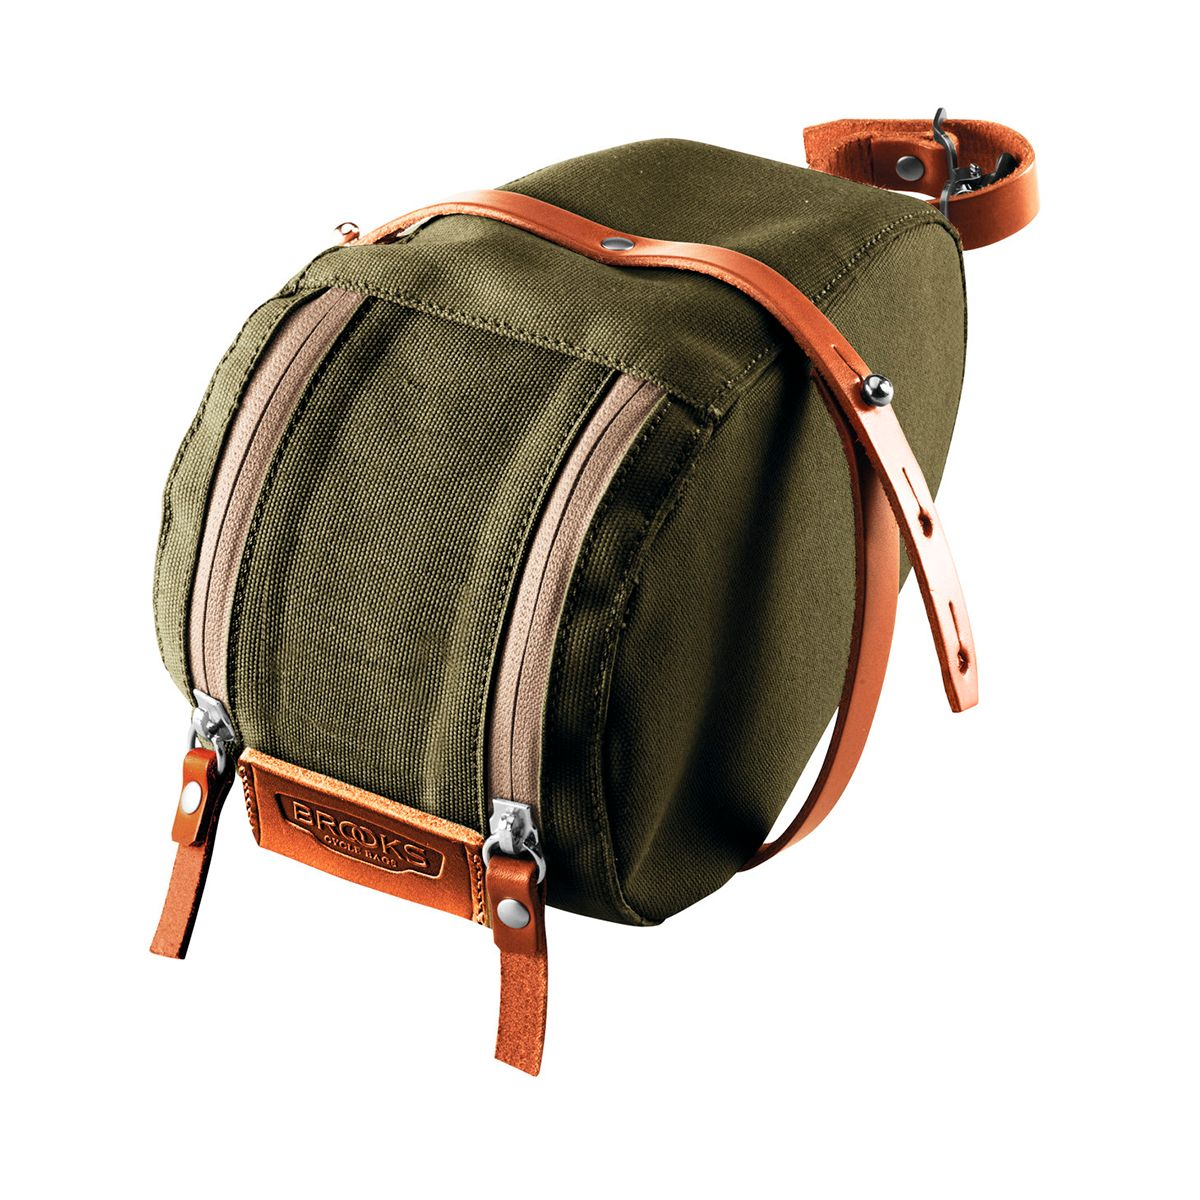 ISLE OF WIGHT Saddle Bag MEDIUM